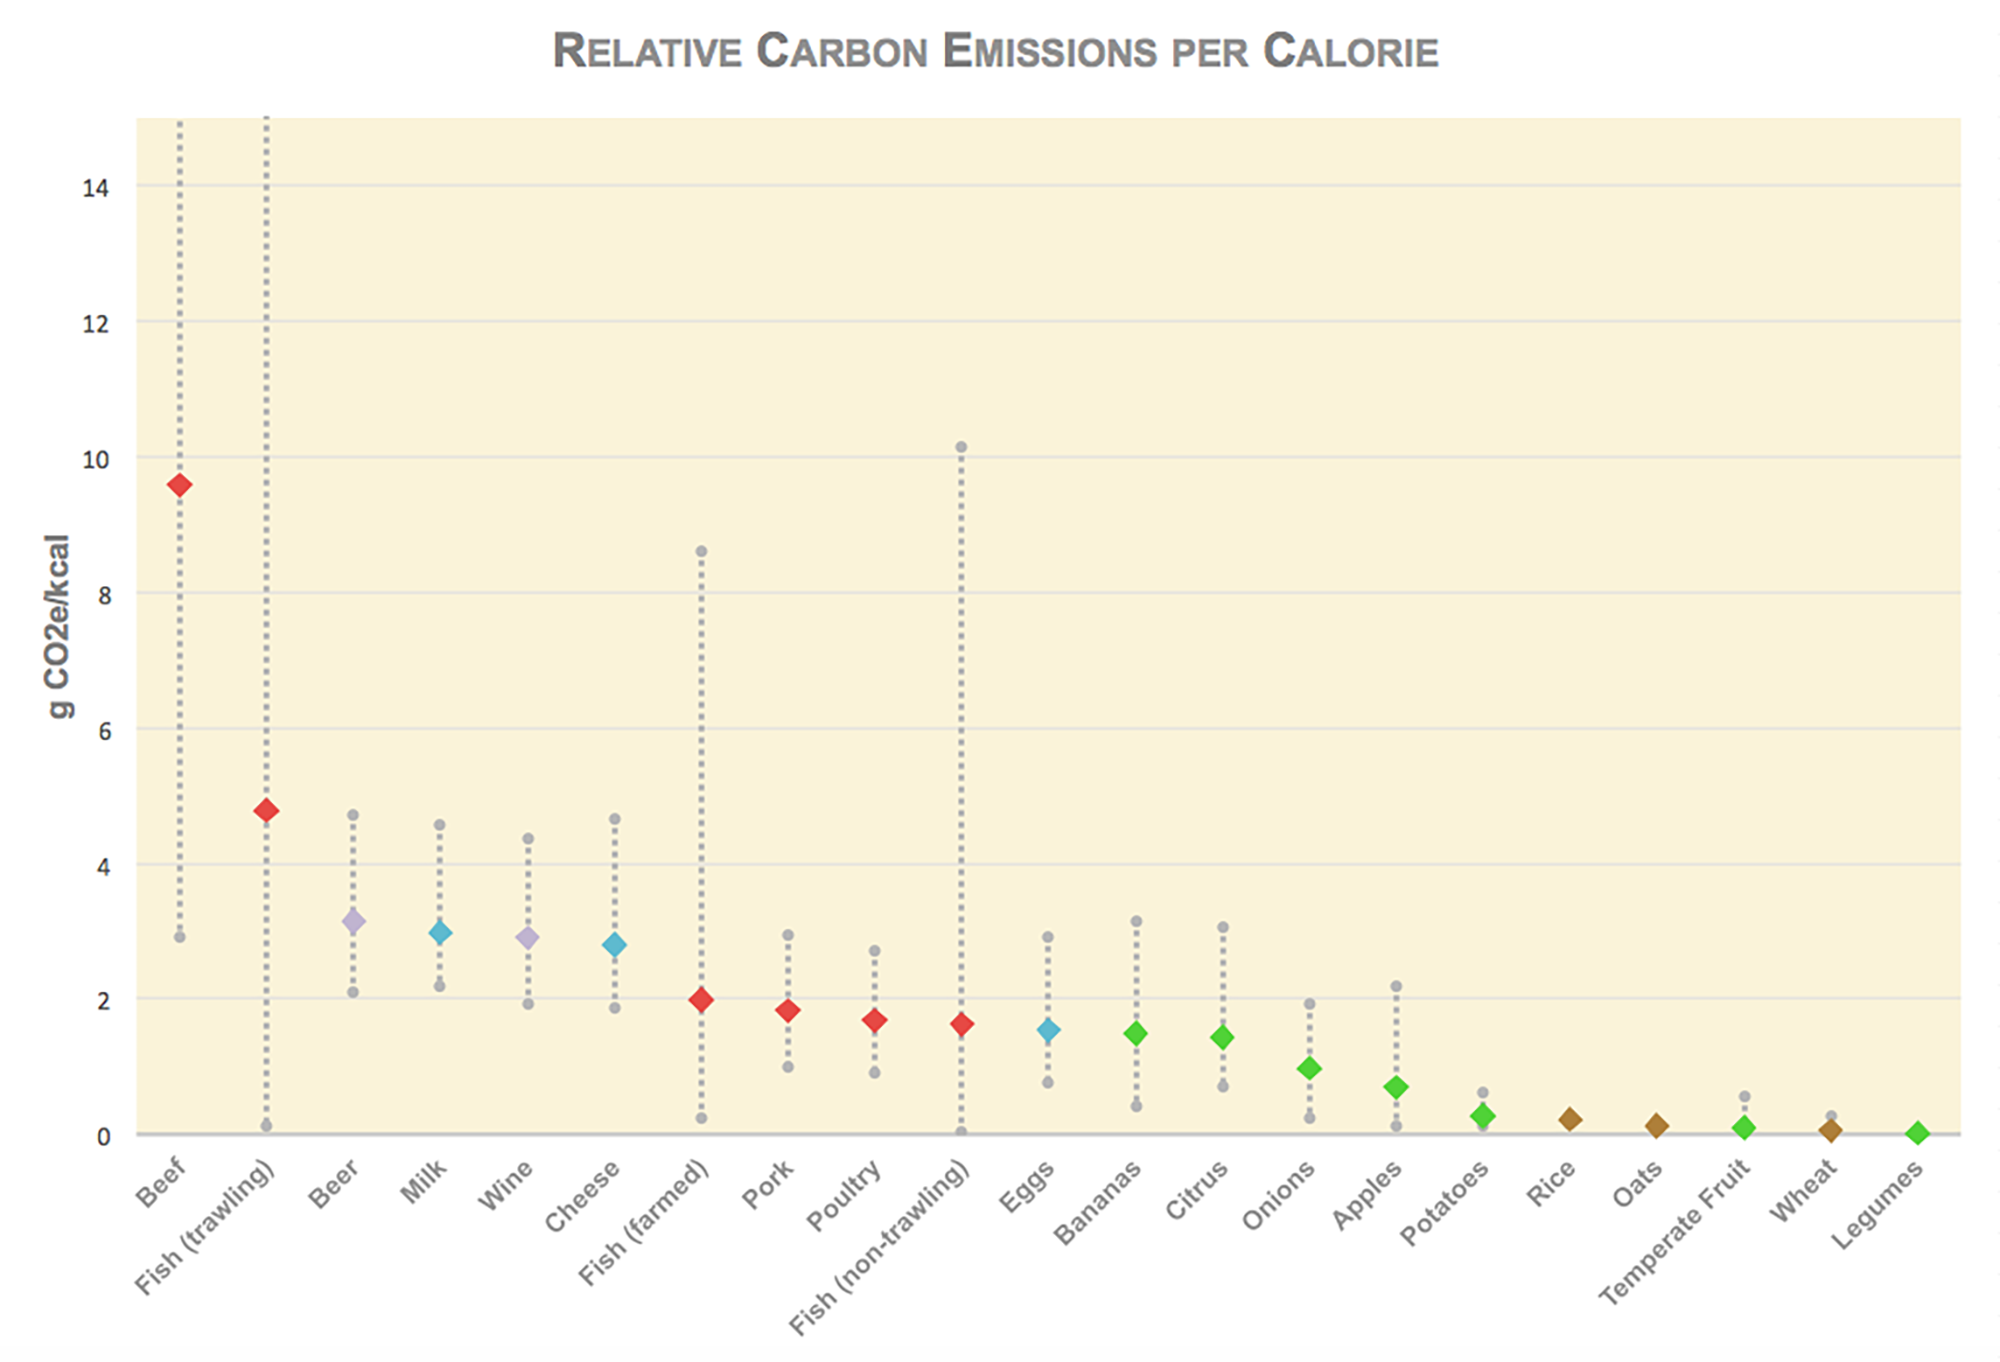 Chart: Average relative carbon emissions